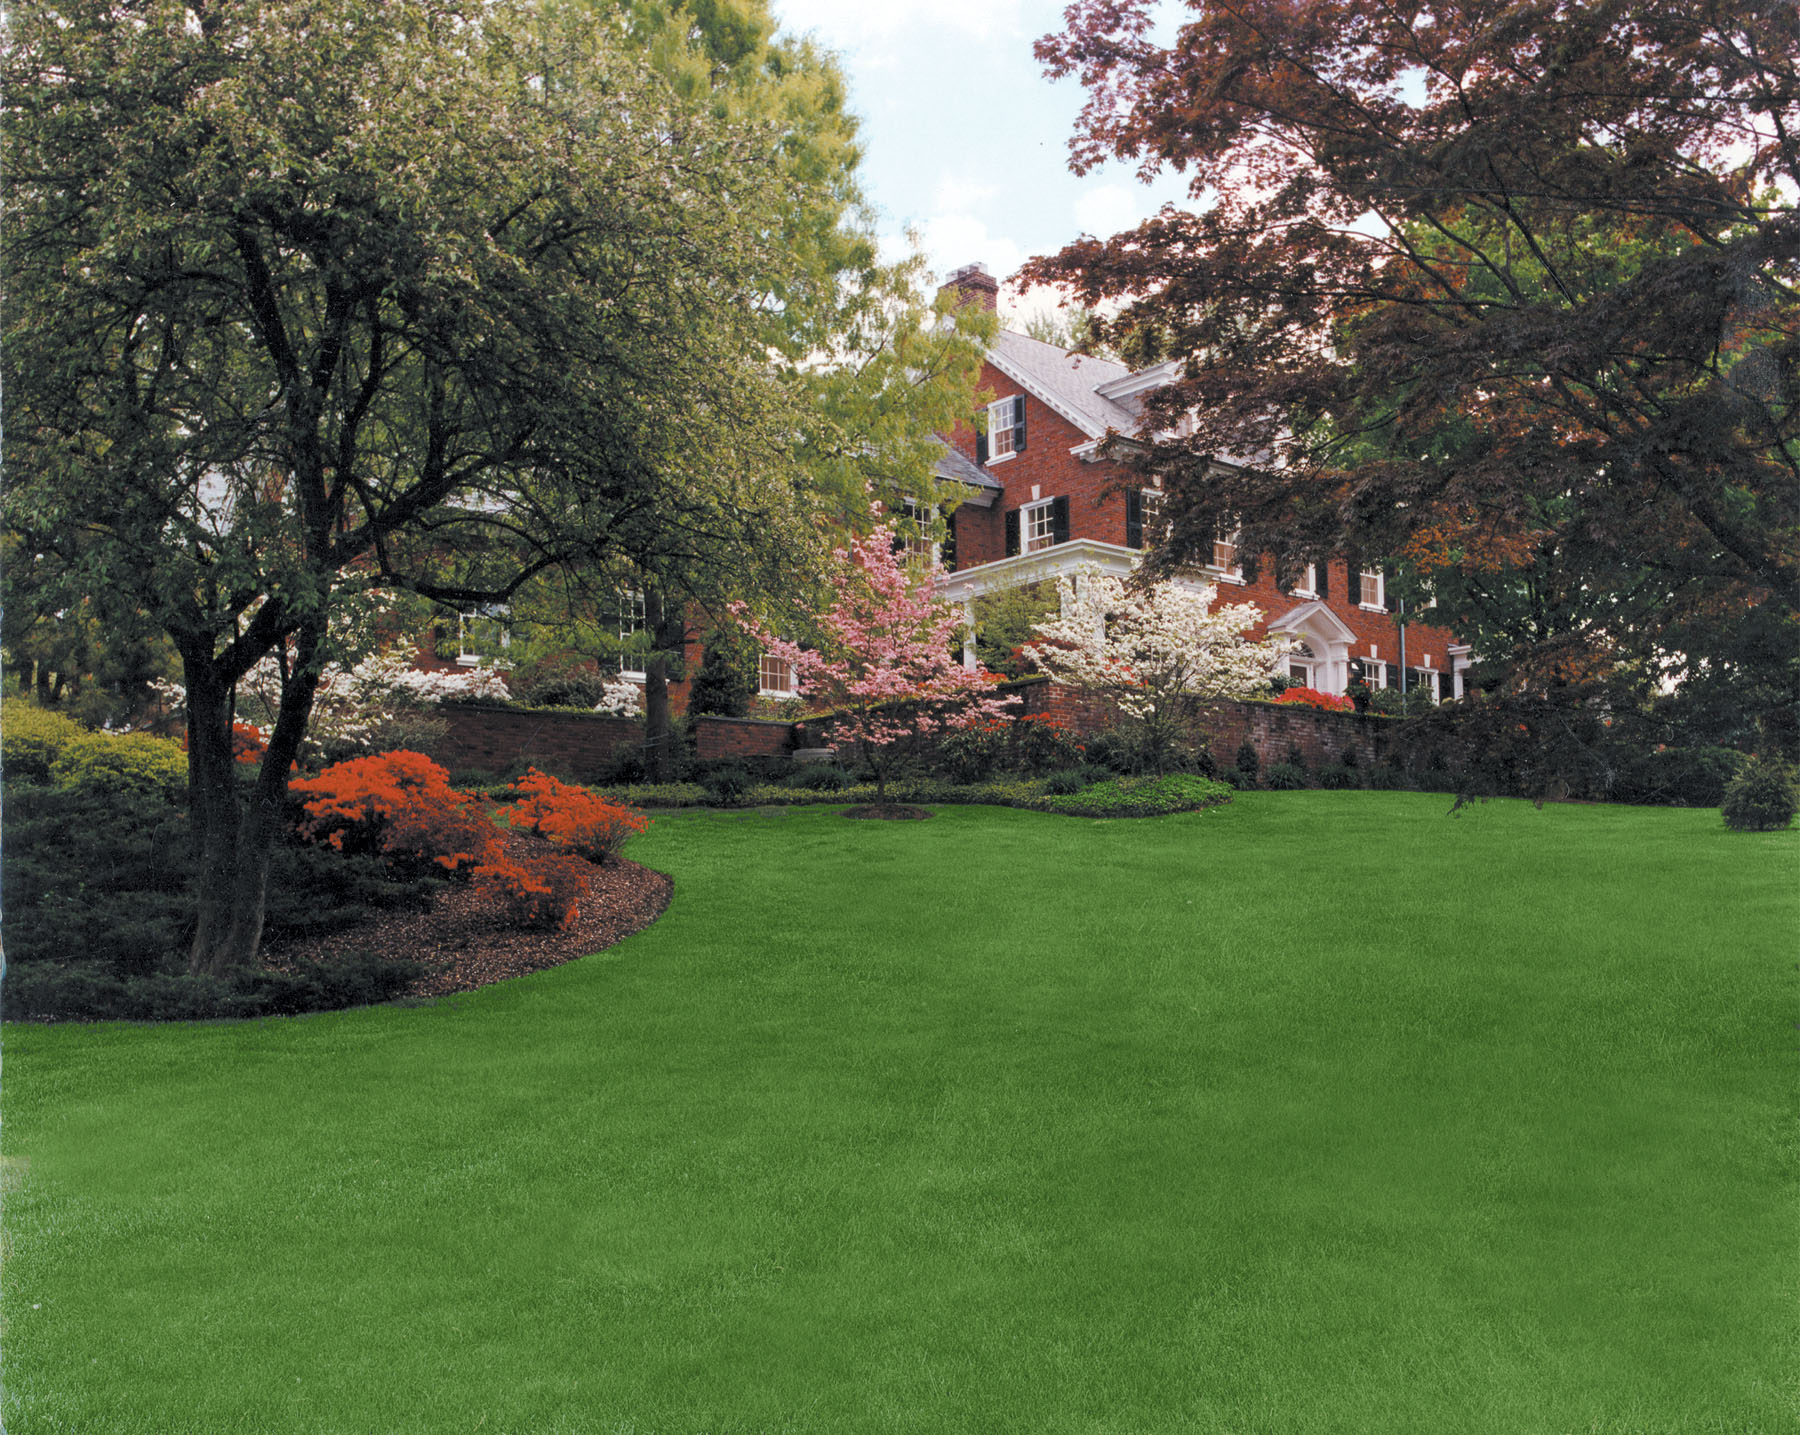 Remarkable Landscape In To Or Start Over Your Ugly Tomlinson Bomberger Lawn outdoor Beautiful Lawn And Landscape